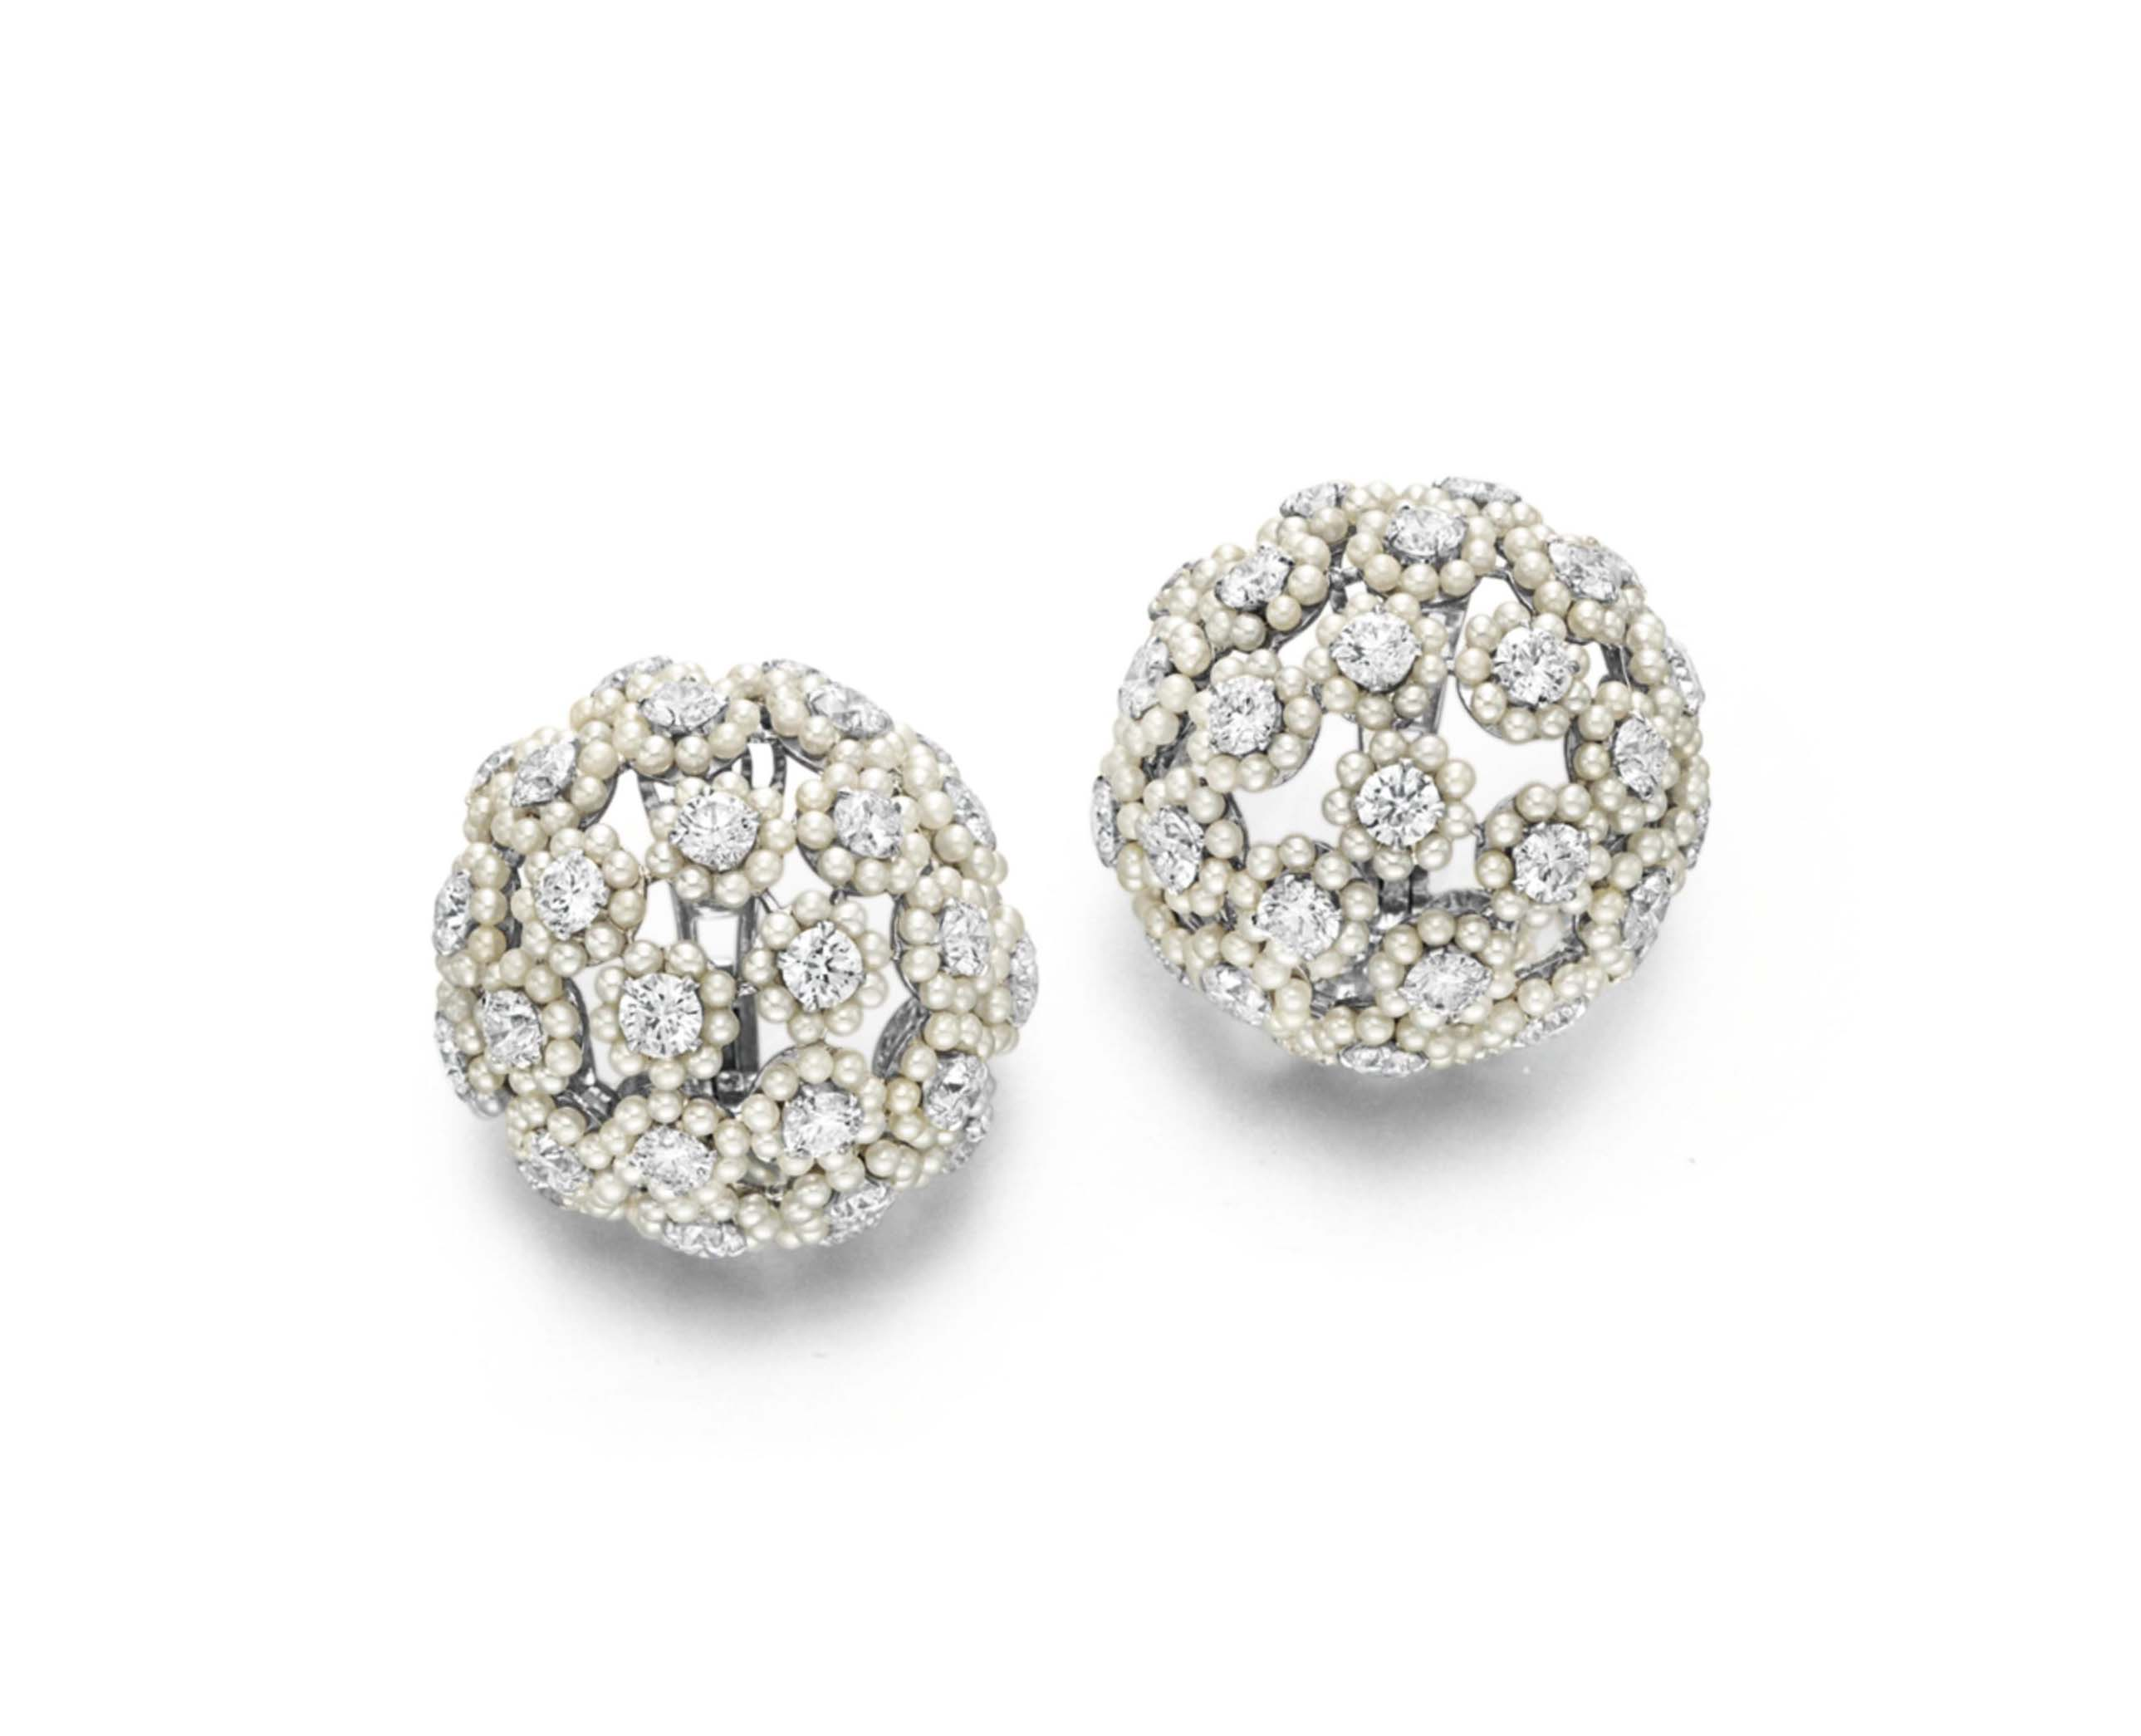 A PAIR OF DIAMOND AND PEARL EAR CLIPS, BY BHAGAT